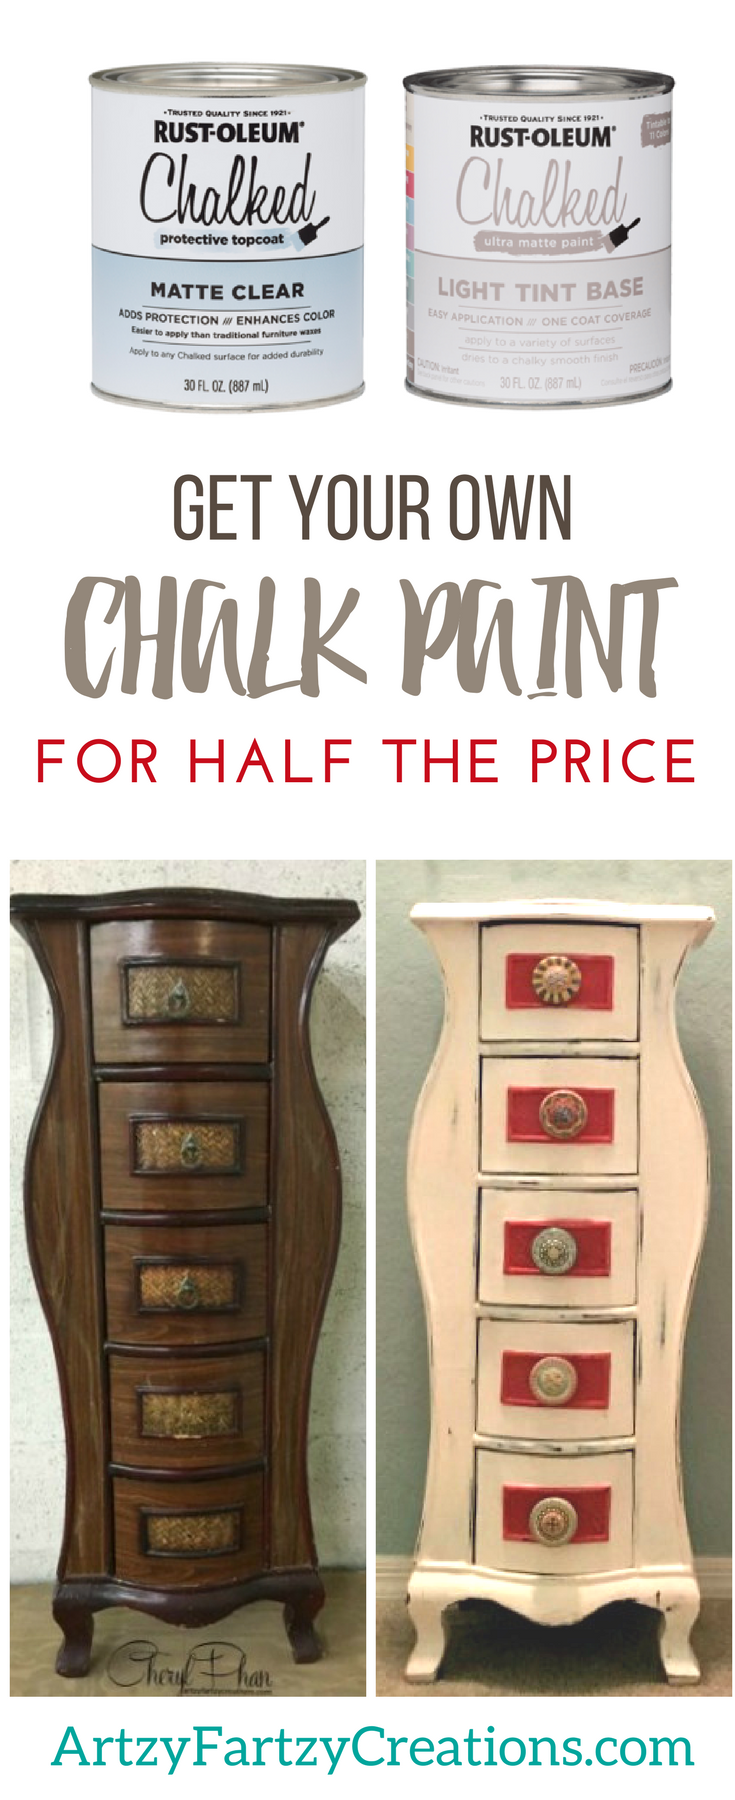 Get your own Chalk Paint for half the price | Chalk Paint Brands | Painting with Chalk Paint | Painting Tips by Cheryl Phan of ArtzyFartzyCreations.com